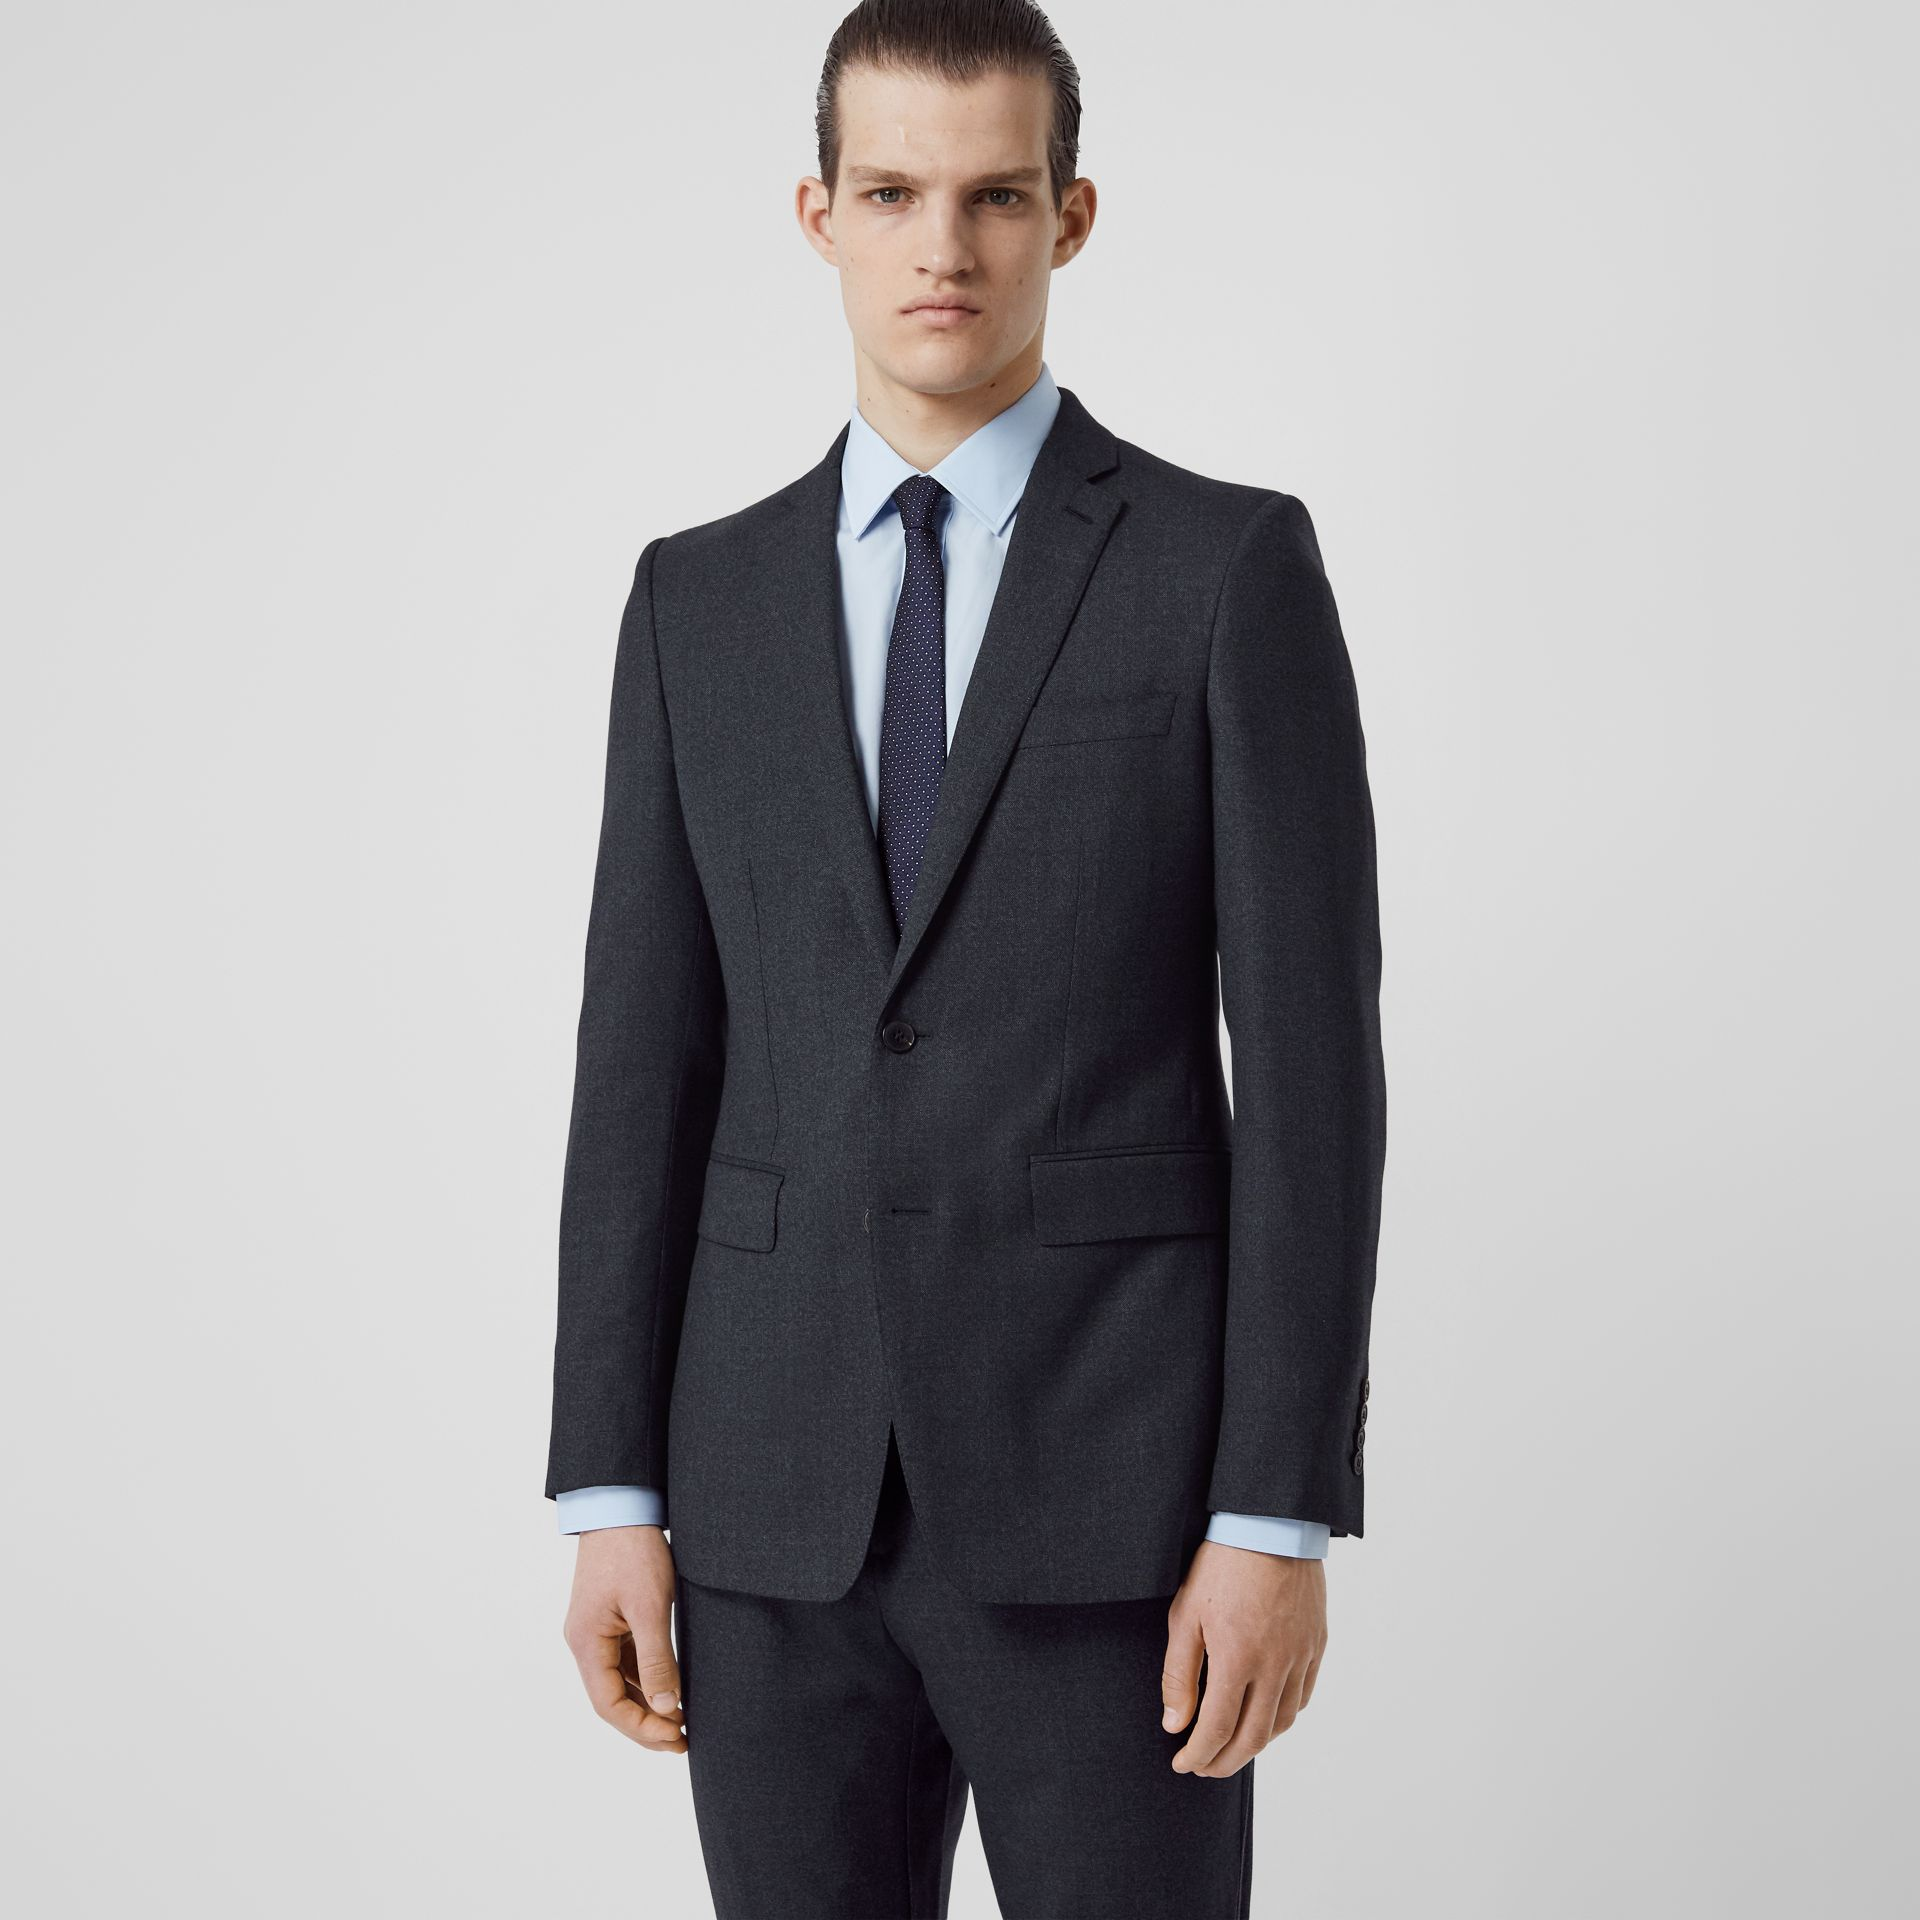 English Fit Sharkskin Wool Suit in Bright Navy Melange - Men | Burberry United Kingdom - gallery image 5